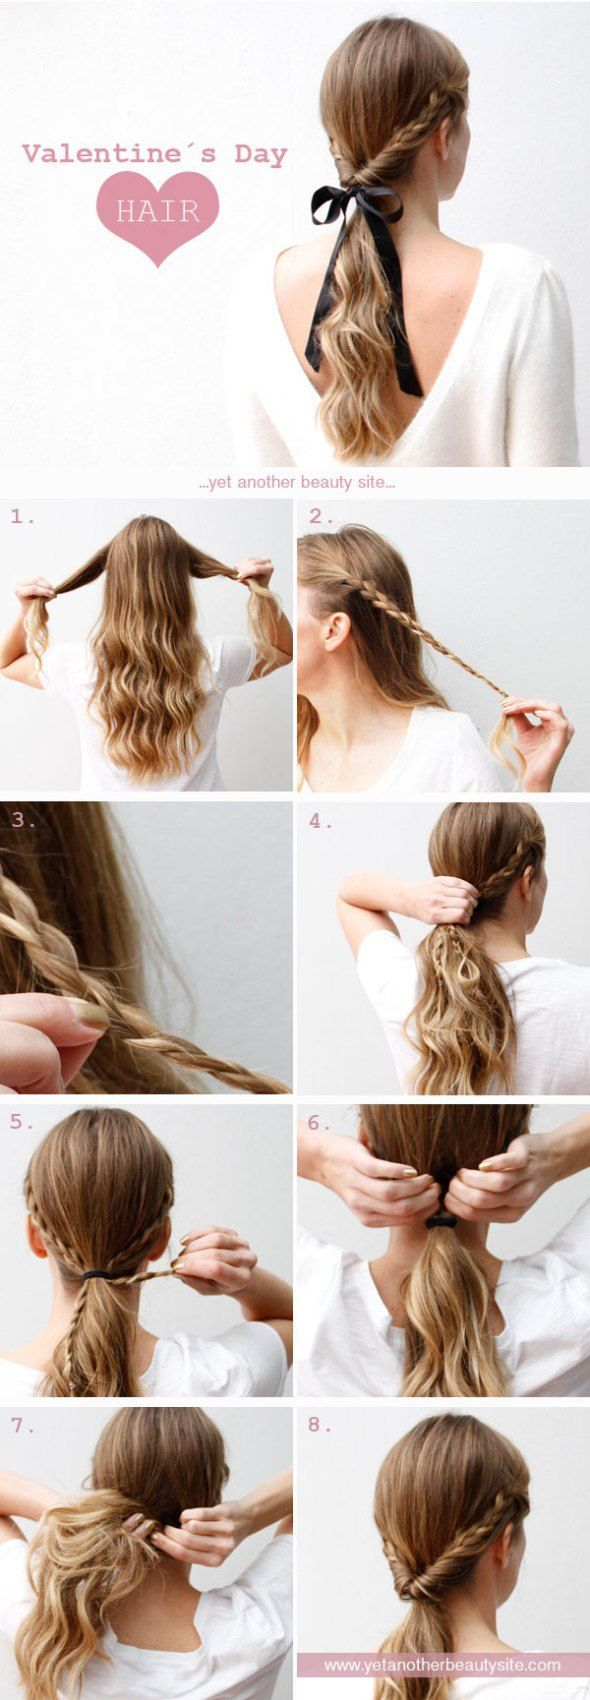 best easy hair images on pinterest hairstyle ideas cute